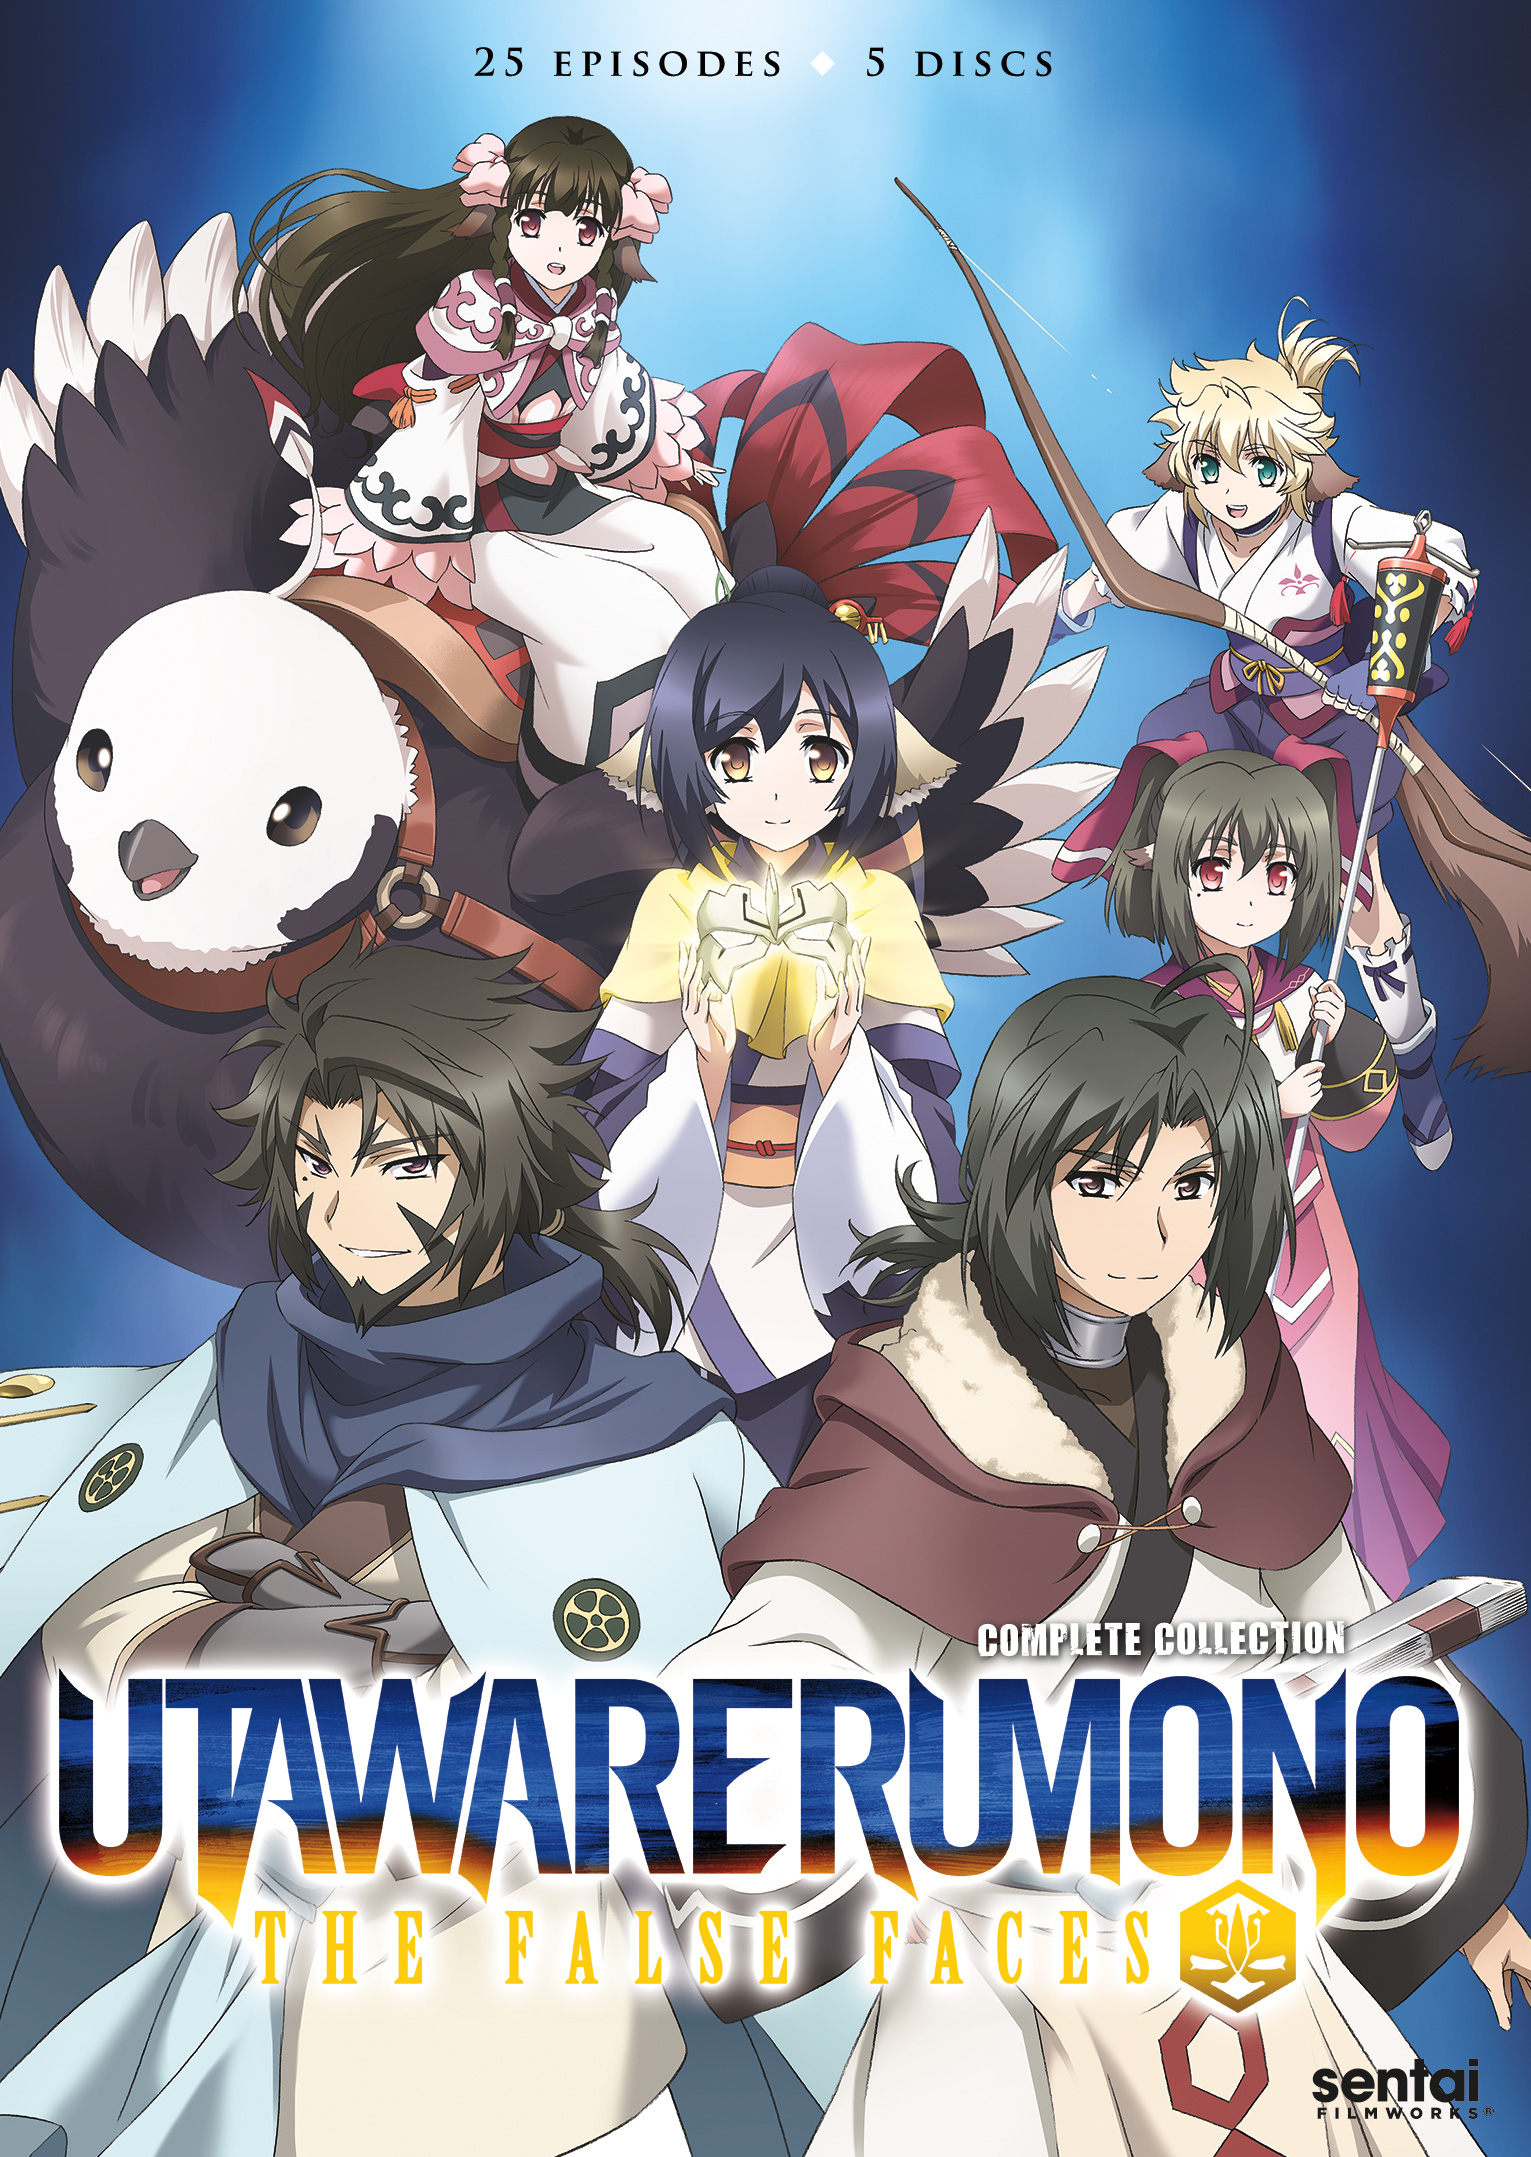 Utawarerumono The False Faces DVD